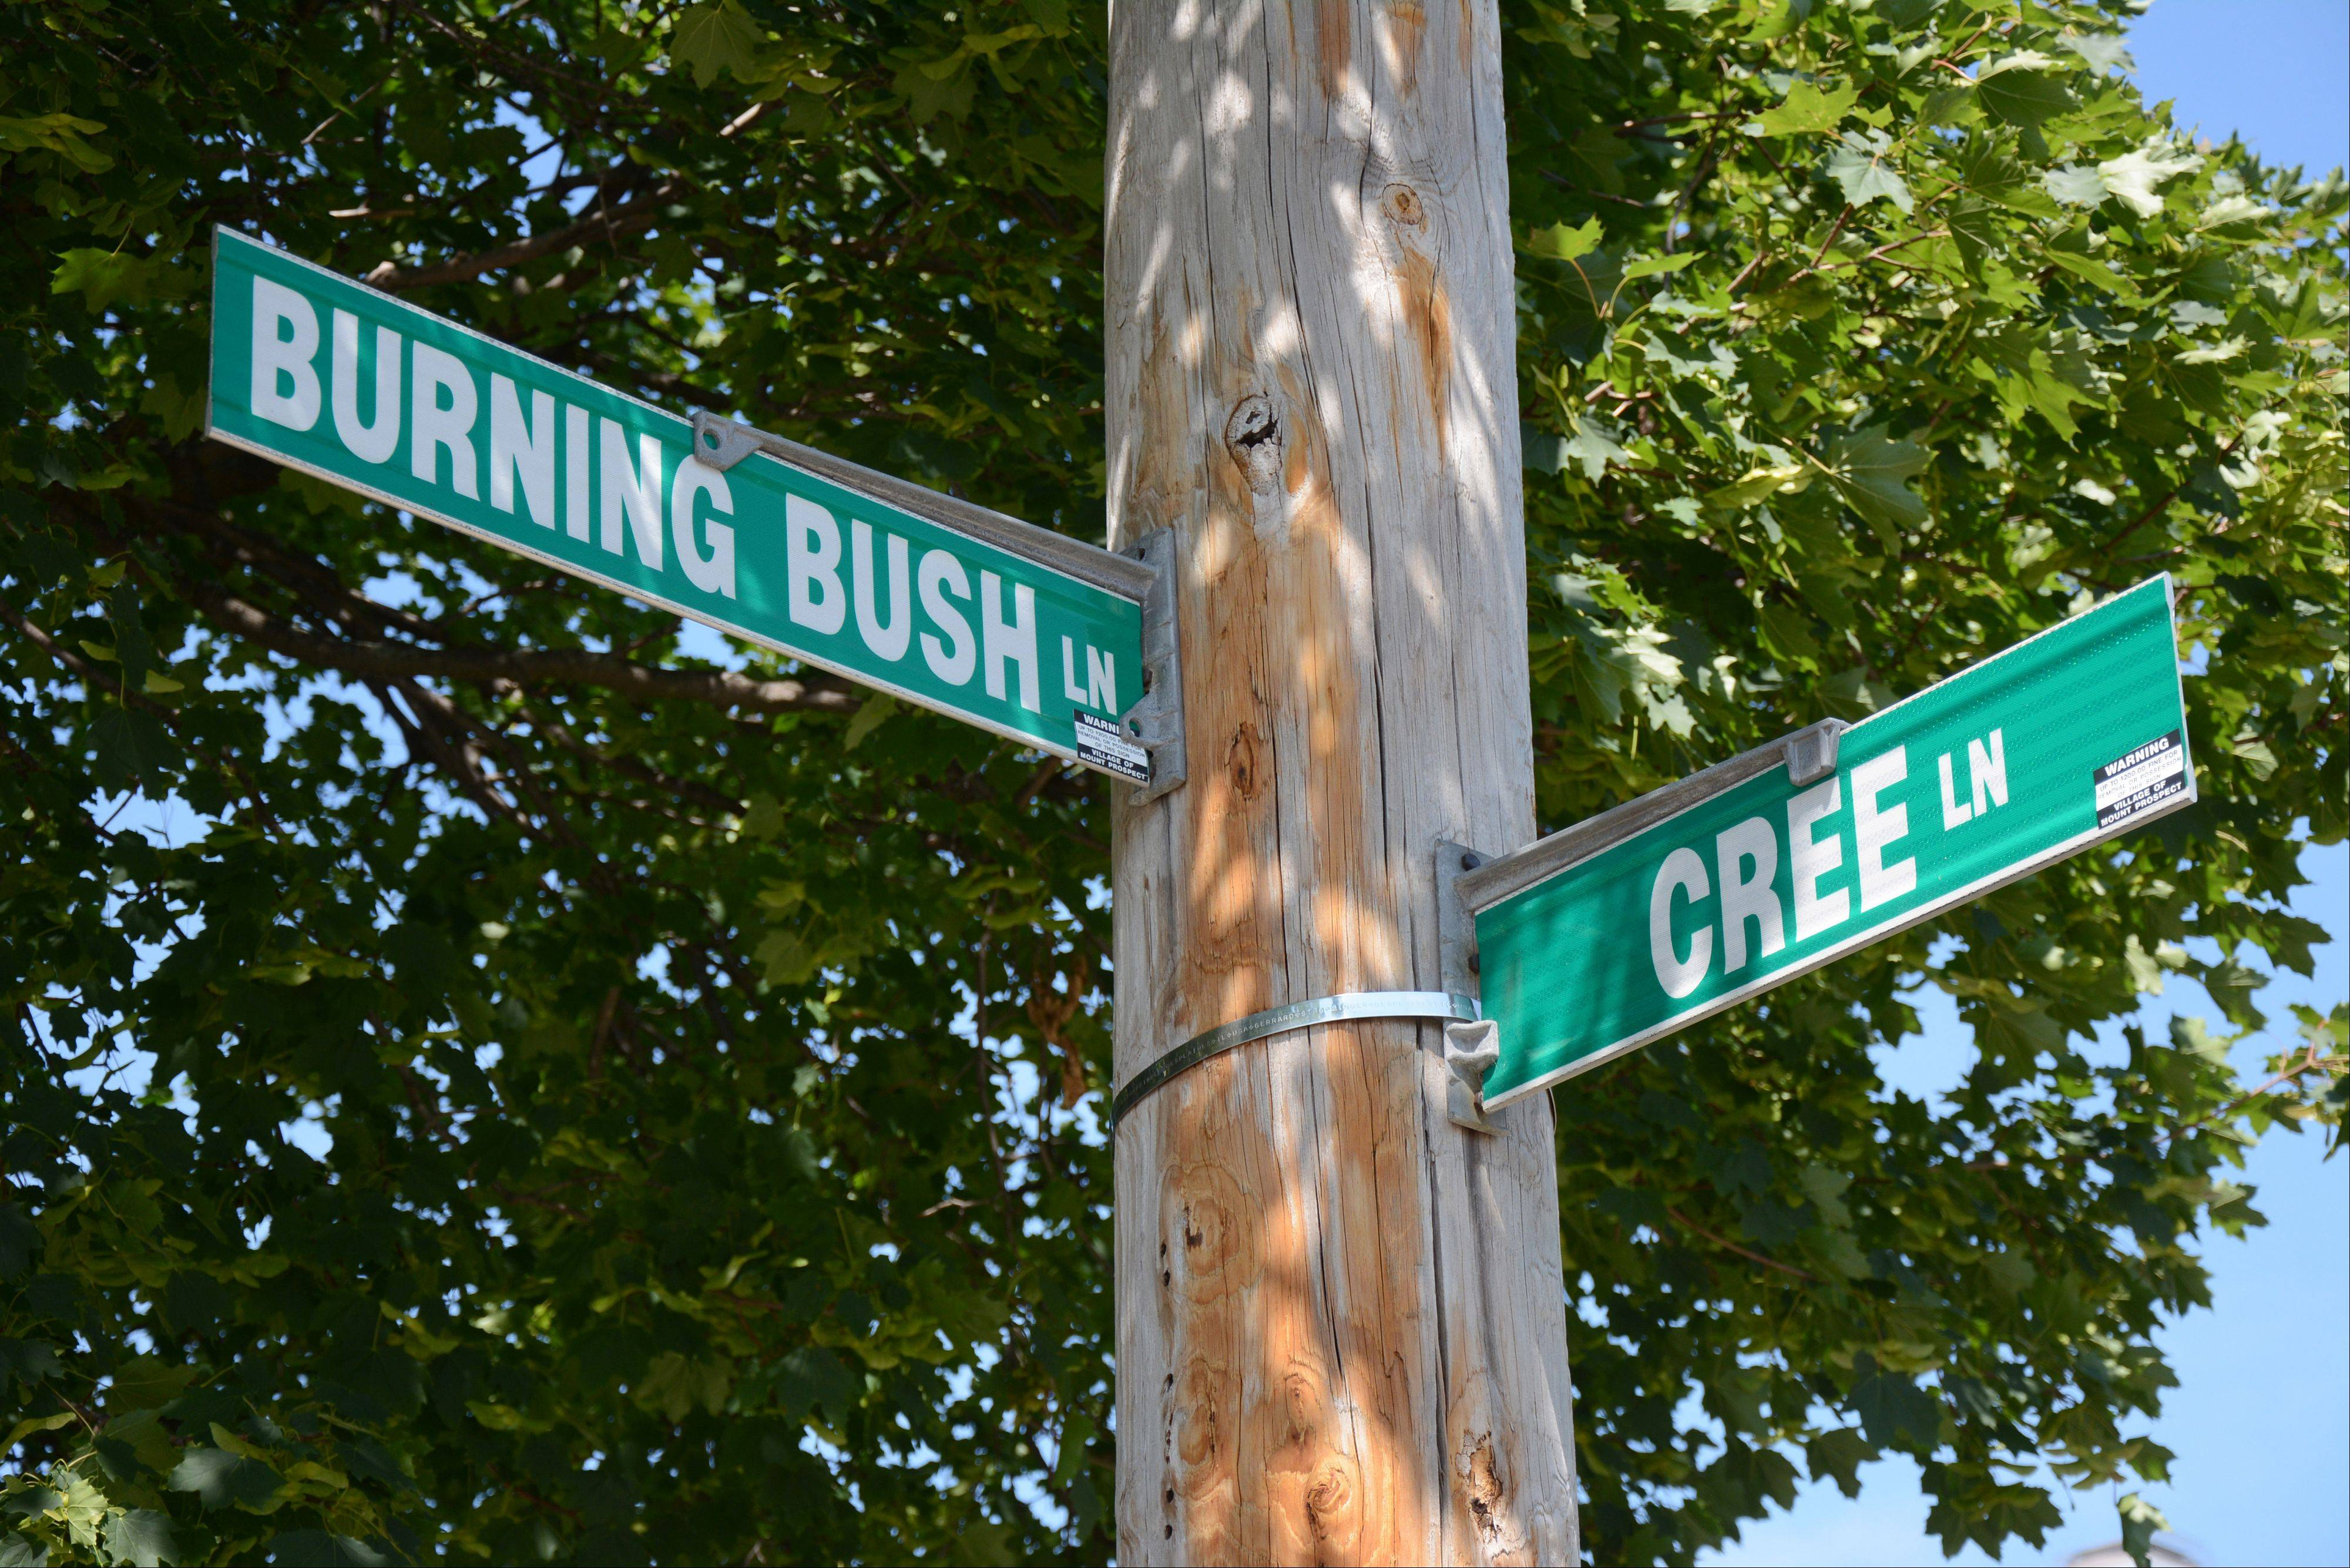 Hoping to ease traffic congestion near Indian Grove Elementary School, Mount Prospect trustees prohibited parking on the east side of Burning Bush Lane between Cree Lane and Burr Oak Drive on school days between 8 a.m. and 4 p.m.